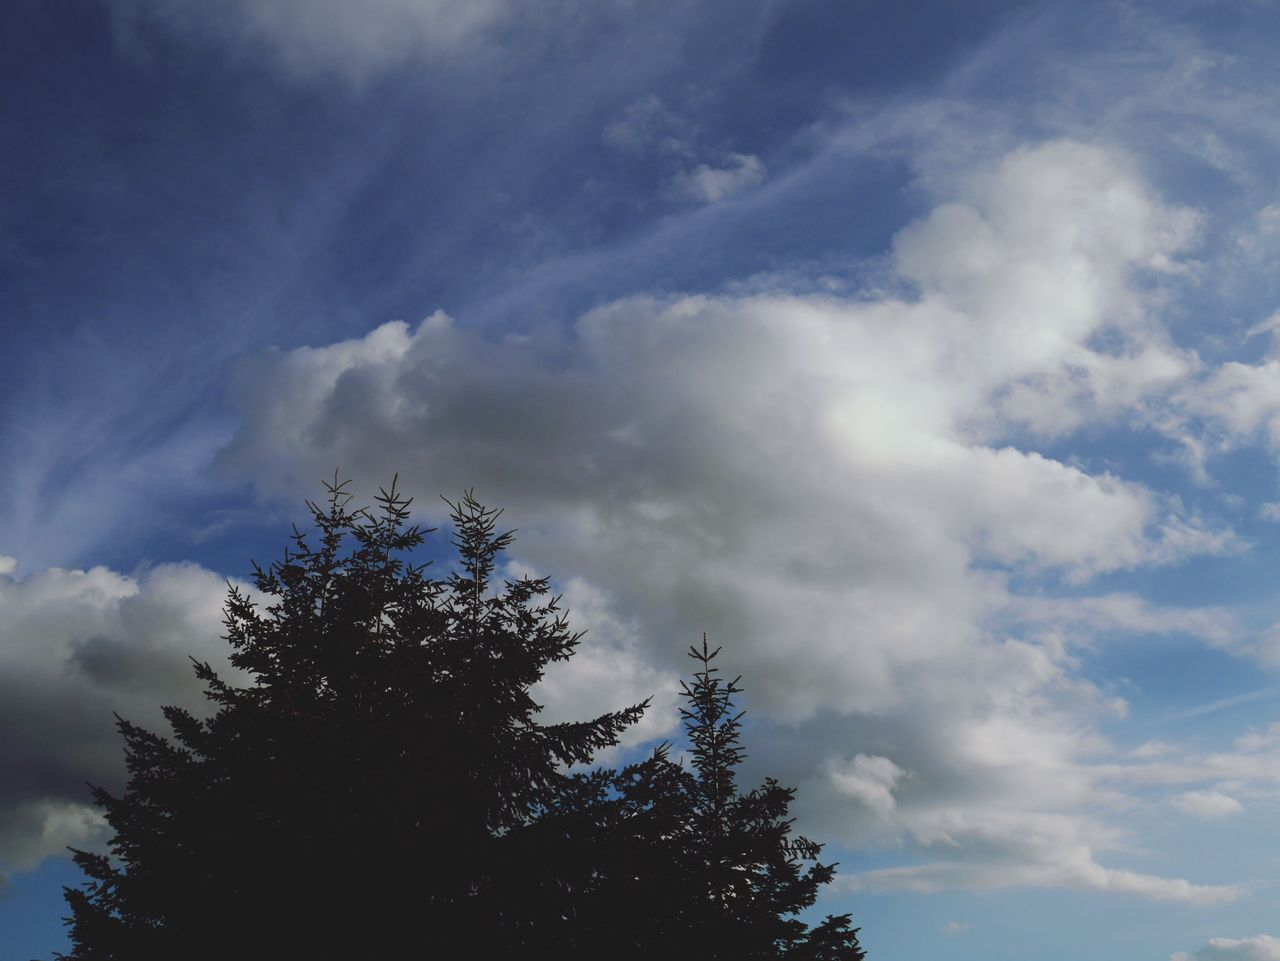 cloud - sky, sky, tree, low angle view, nature, beauty in nature, day, no people, outdoors, growth, tranquility, scenics